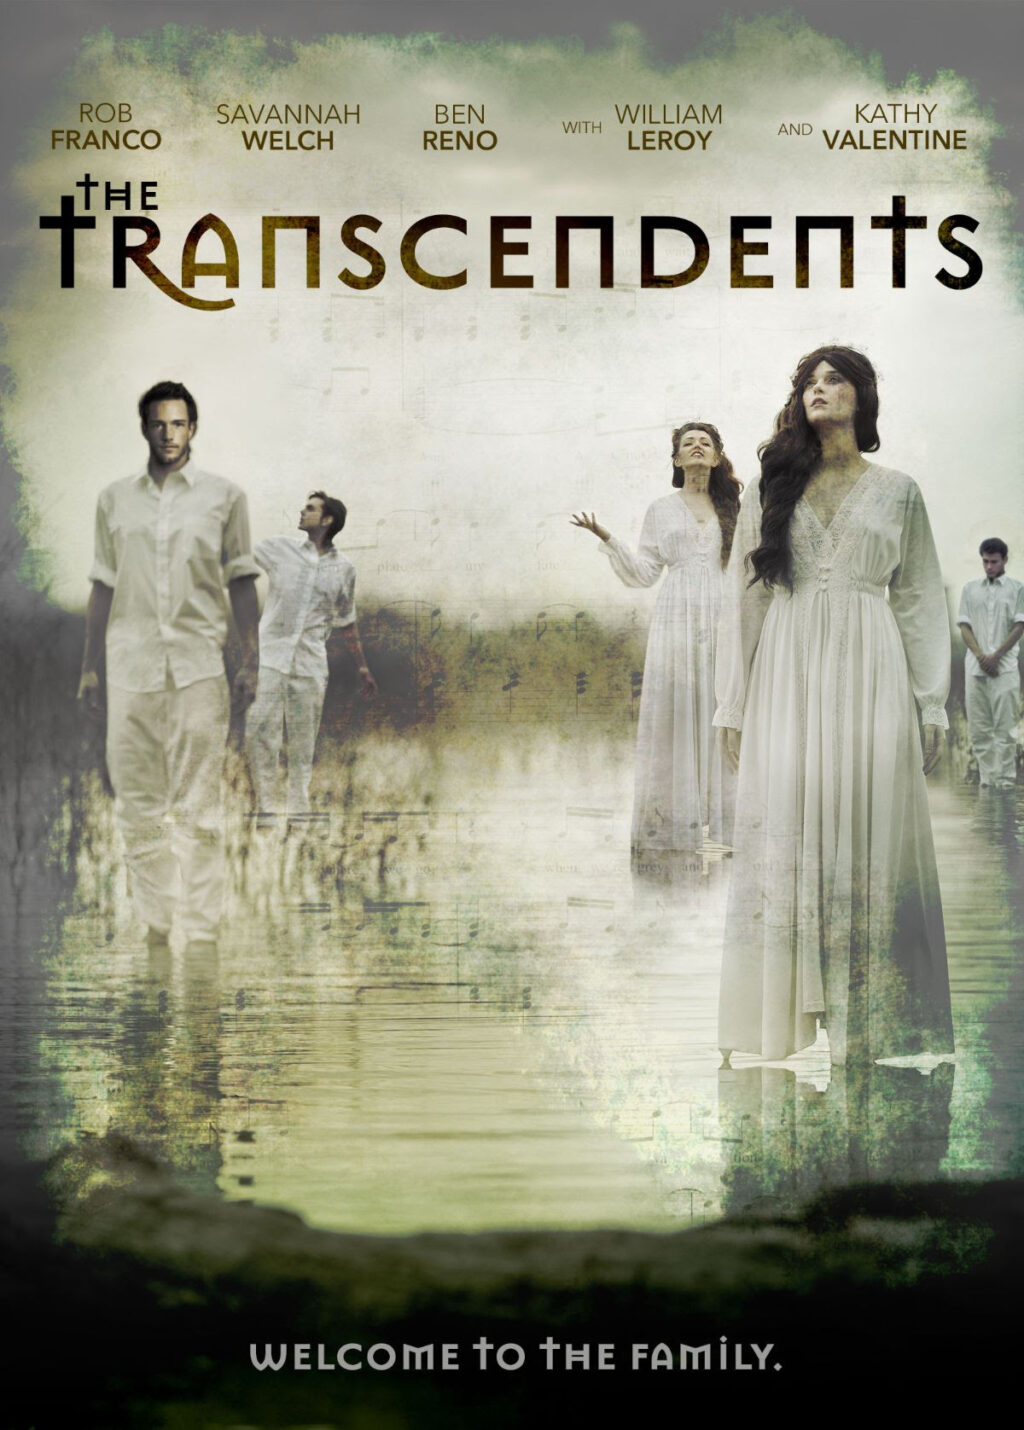 The Transcendents Poster 1024x1430 - Trailer: THE TRANSCENDENTS Has a Surreal, Lynchian Feel